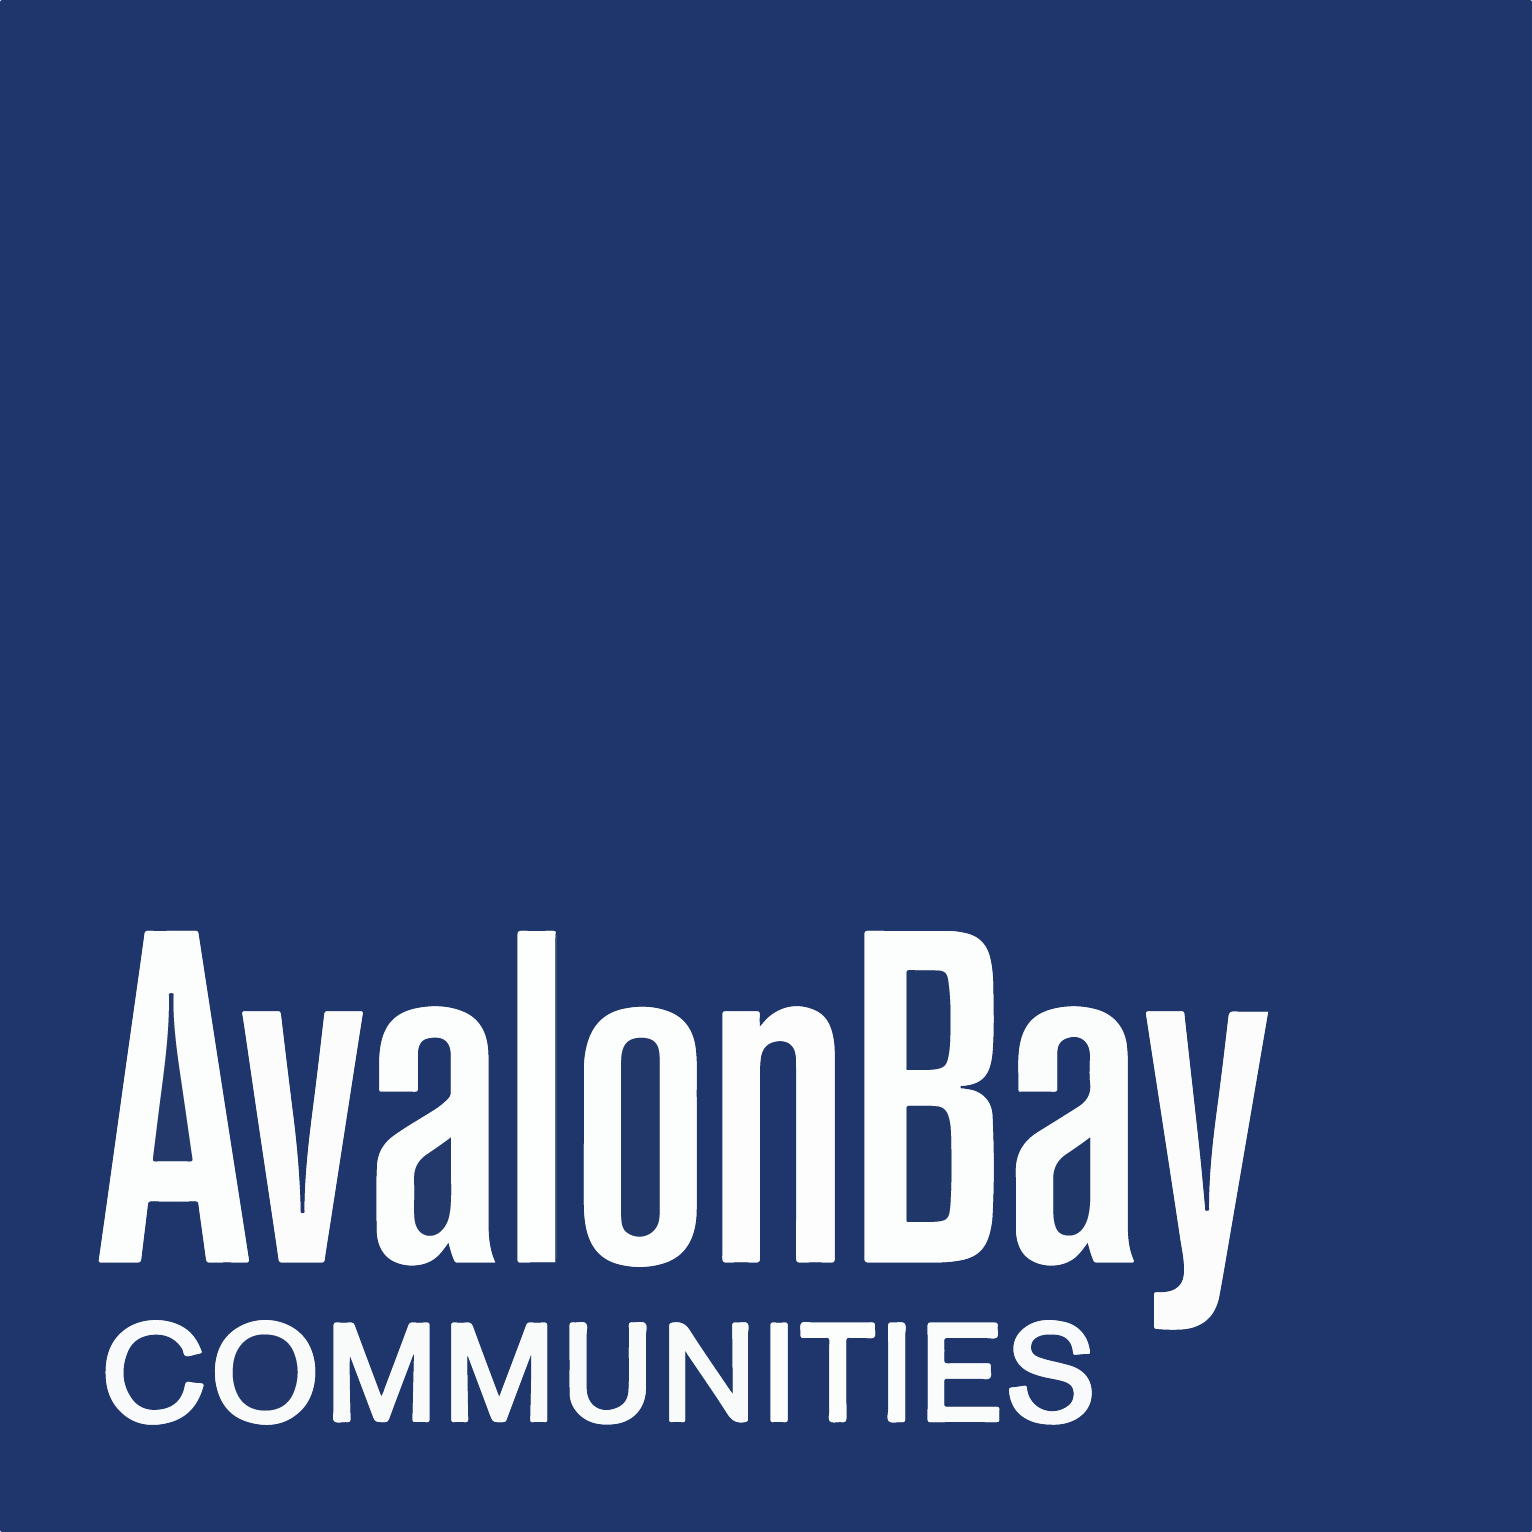 AvalonBay Communities Logo png